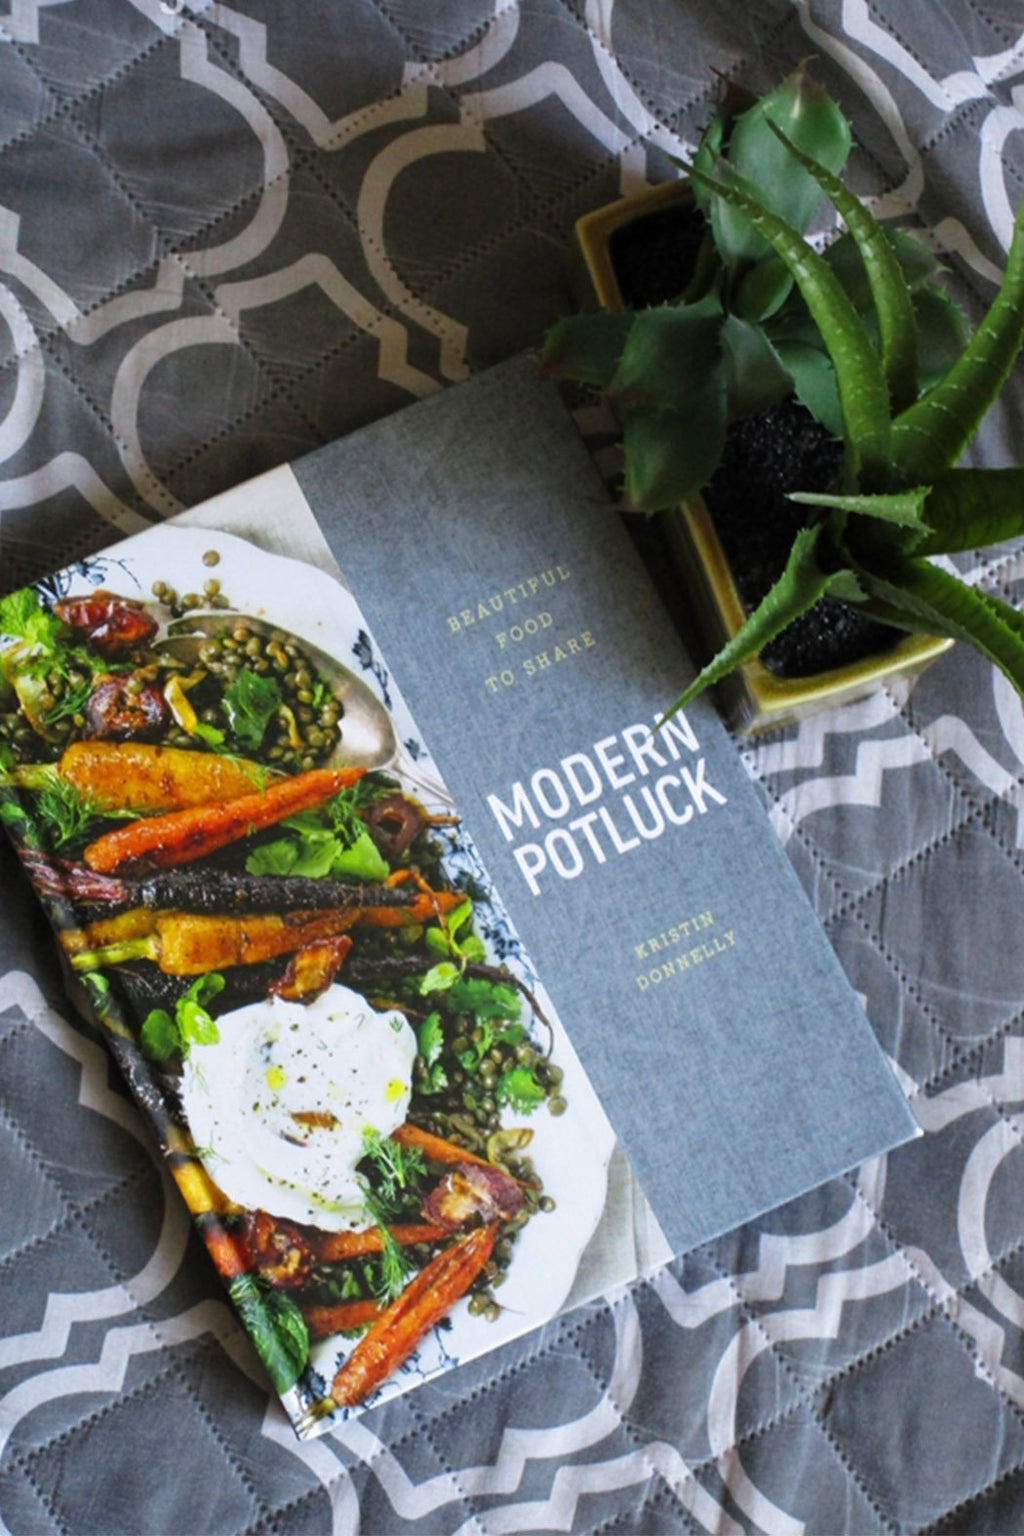 EcoVibe Style - Modern Potluck: Beautiful Food to Share Book by Kristin Donnelly, Book